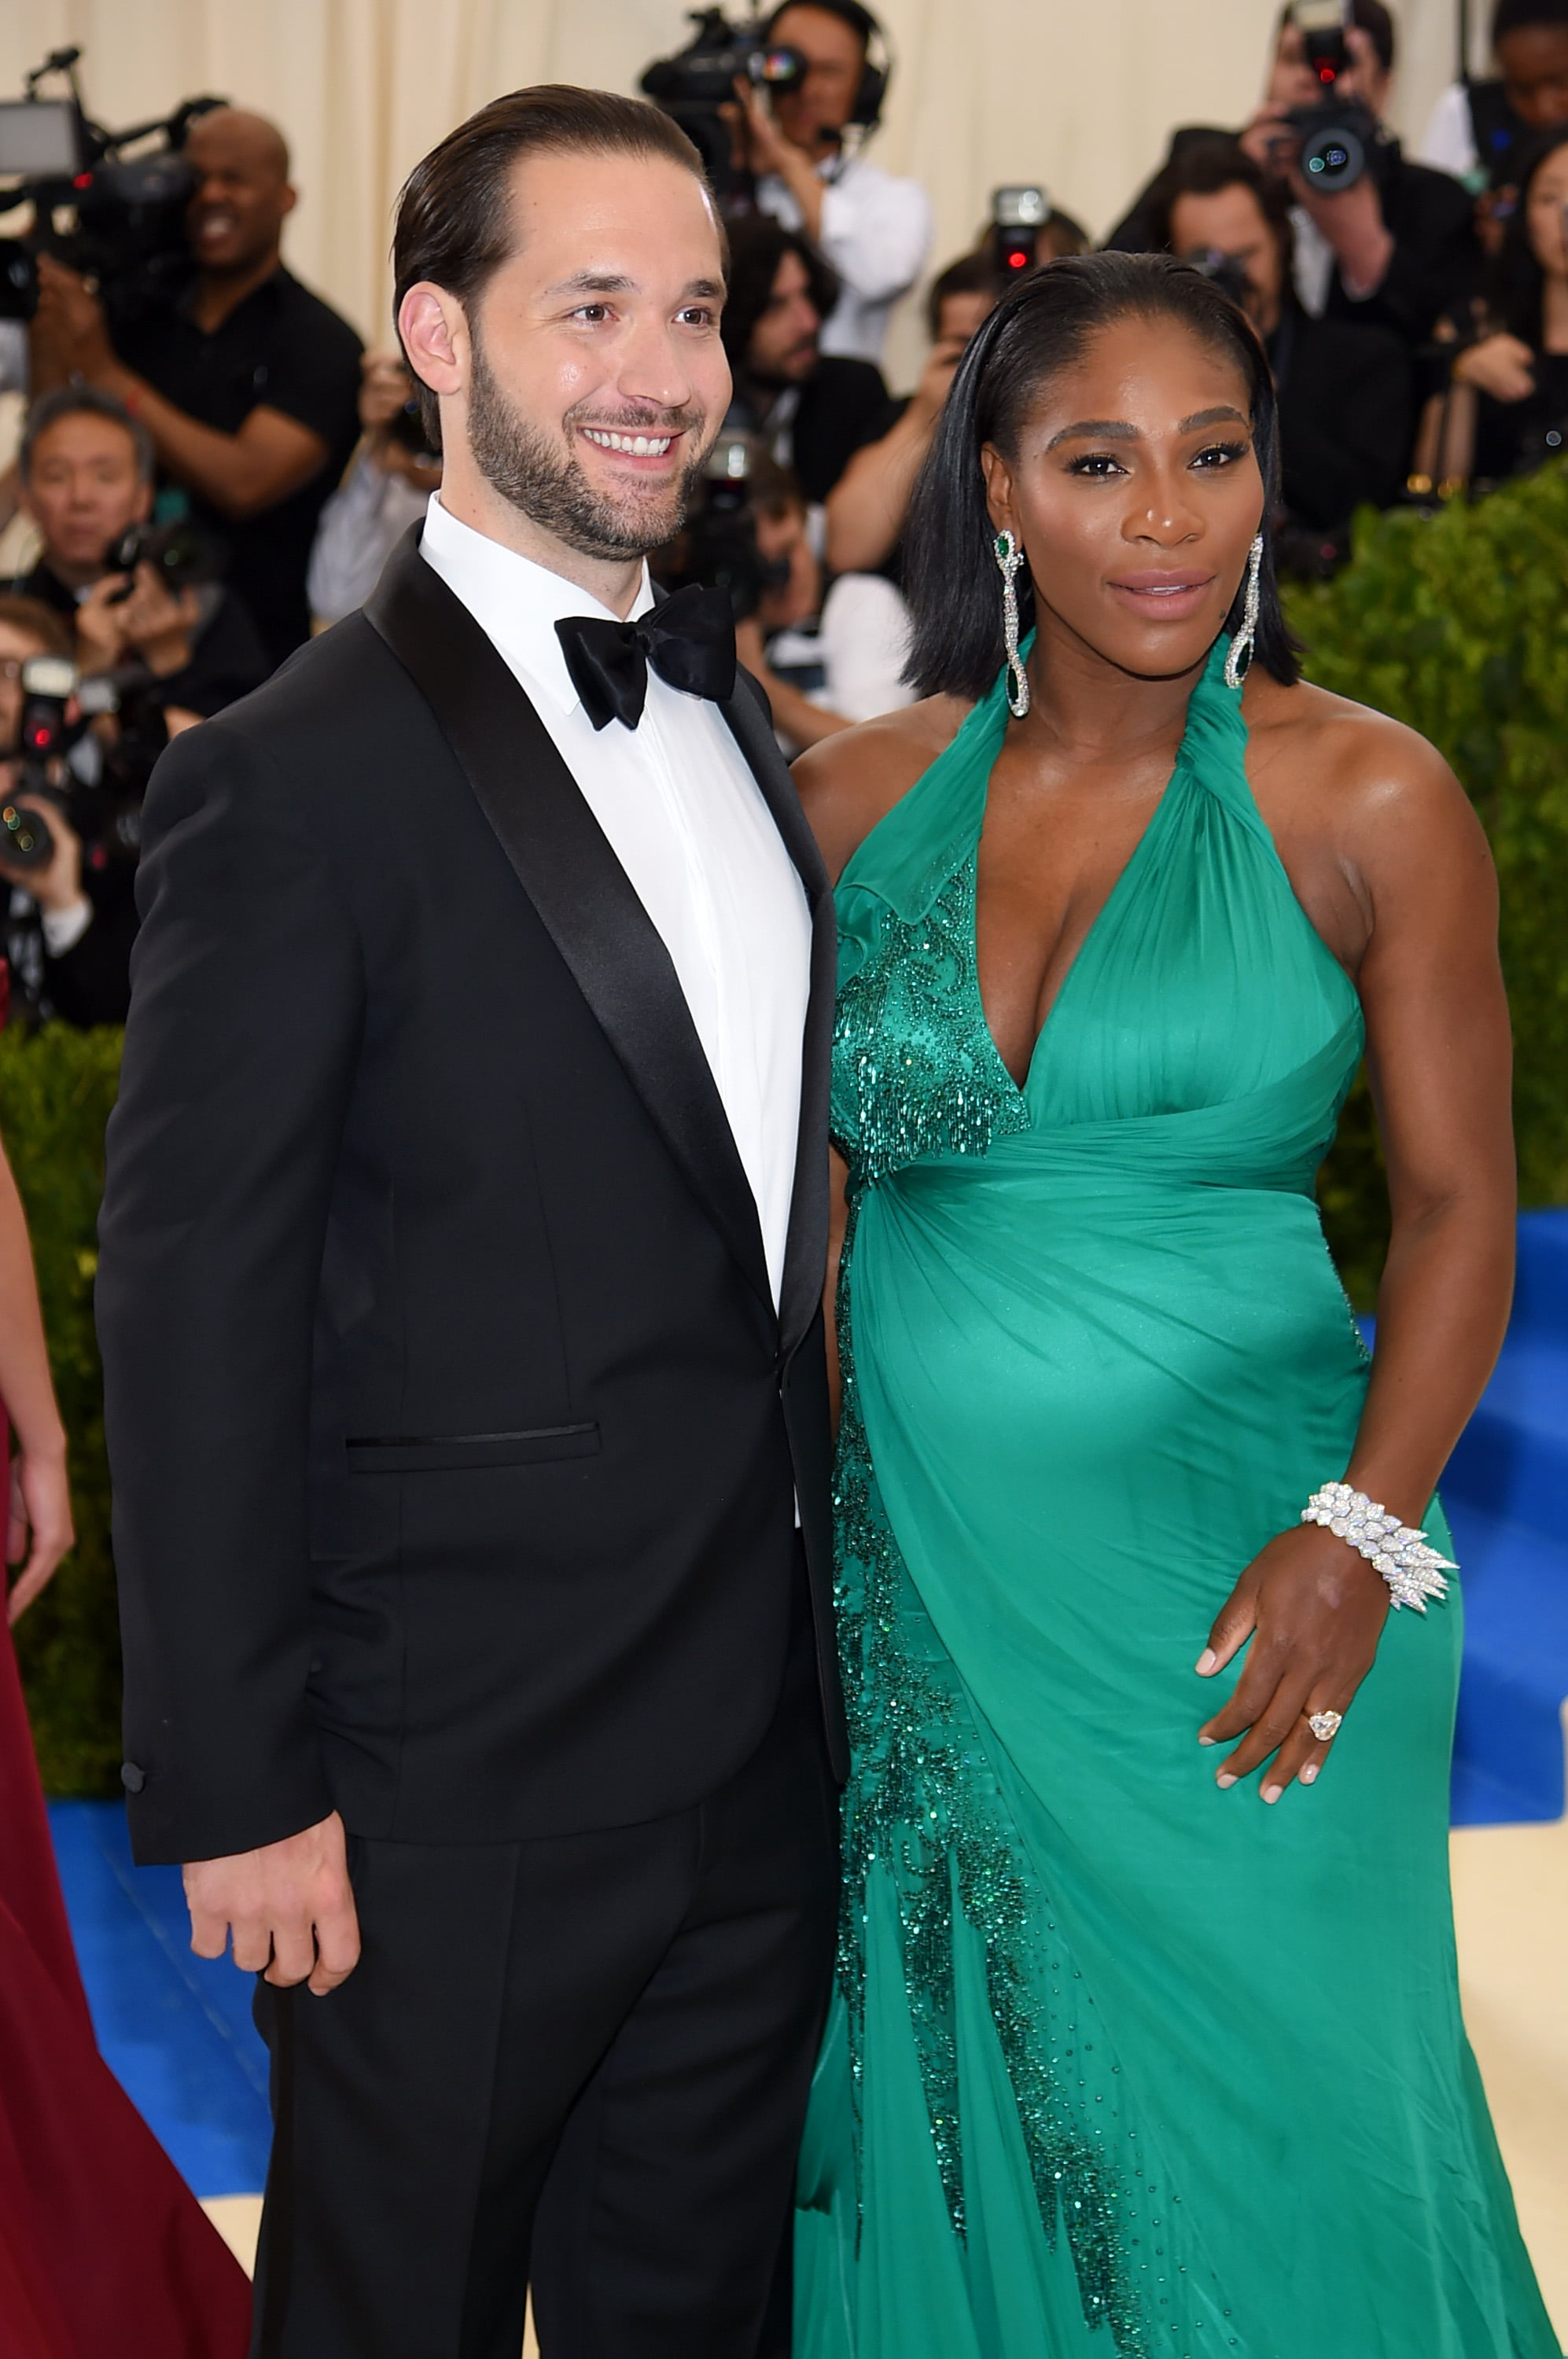 Serena Williams Marries Alexis Ohanian | POPSUGAR Celebrity Australia